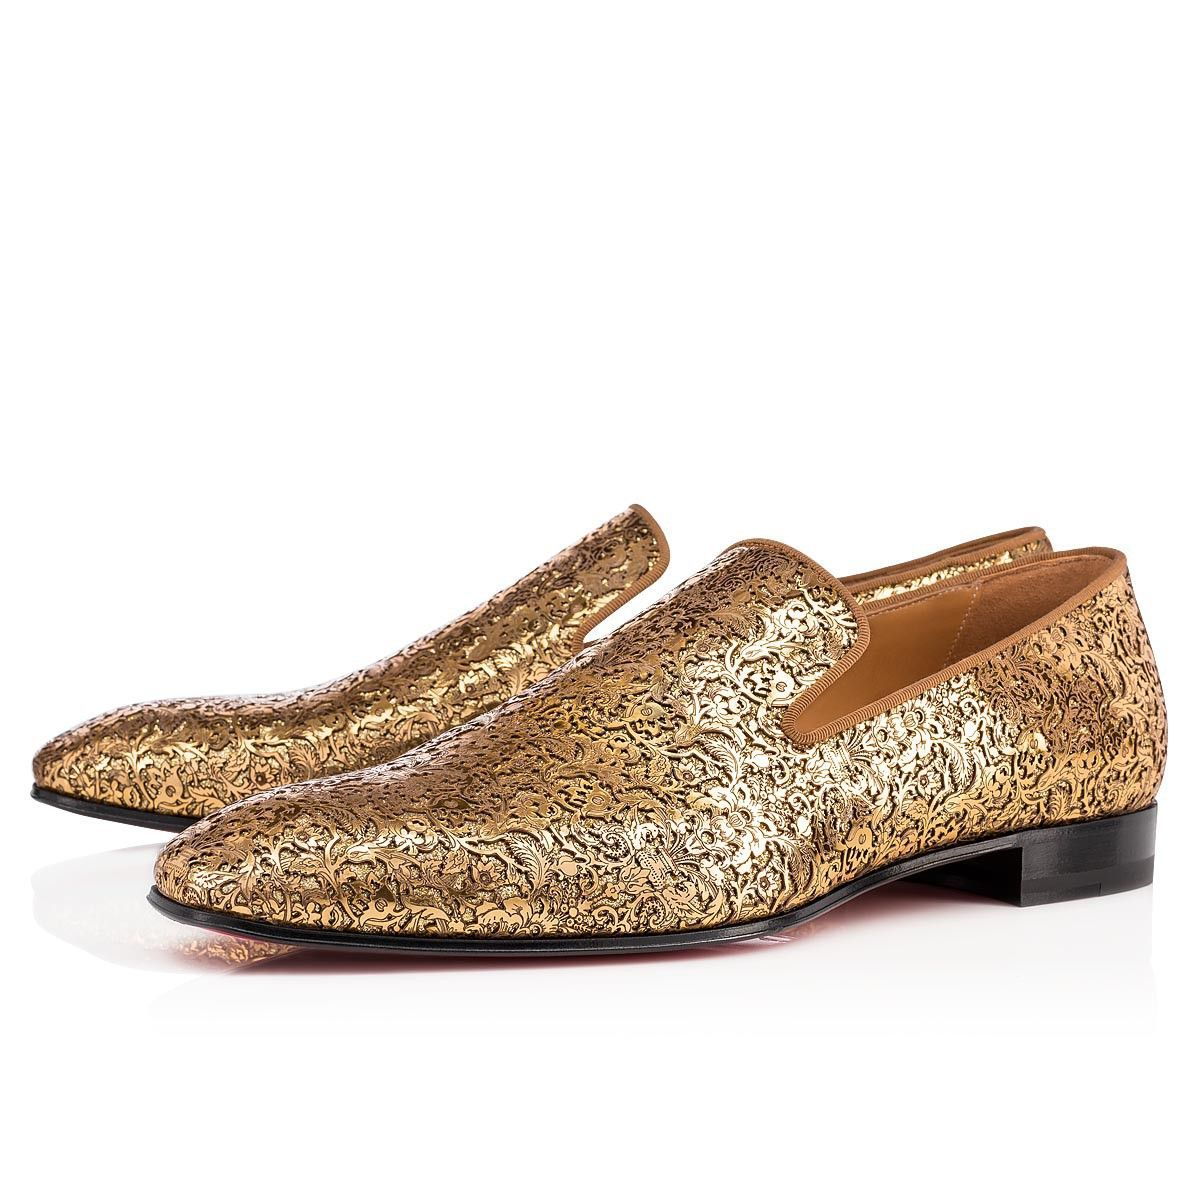 2f22a483a0e3 Christian Louboutin United States Official Online Boutique - Dandelion Flat  Gold Specchio Laser Rococo available online. Discover more Men Shoes by ...